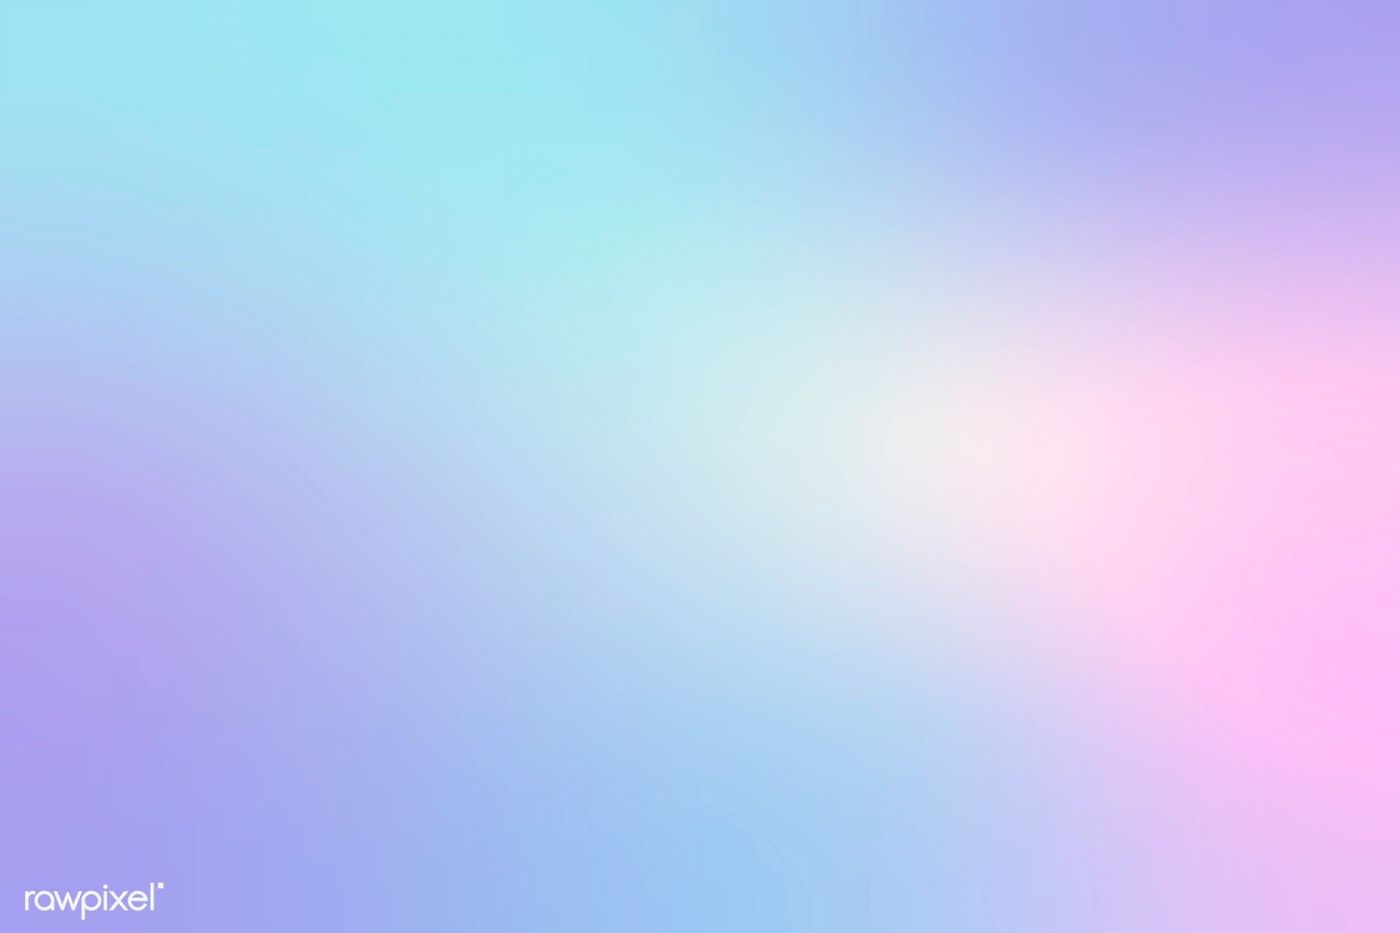 Download premium vector of Colorful holographic gradient 1400x933